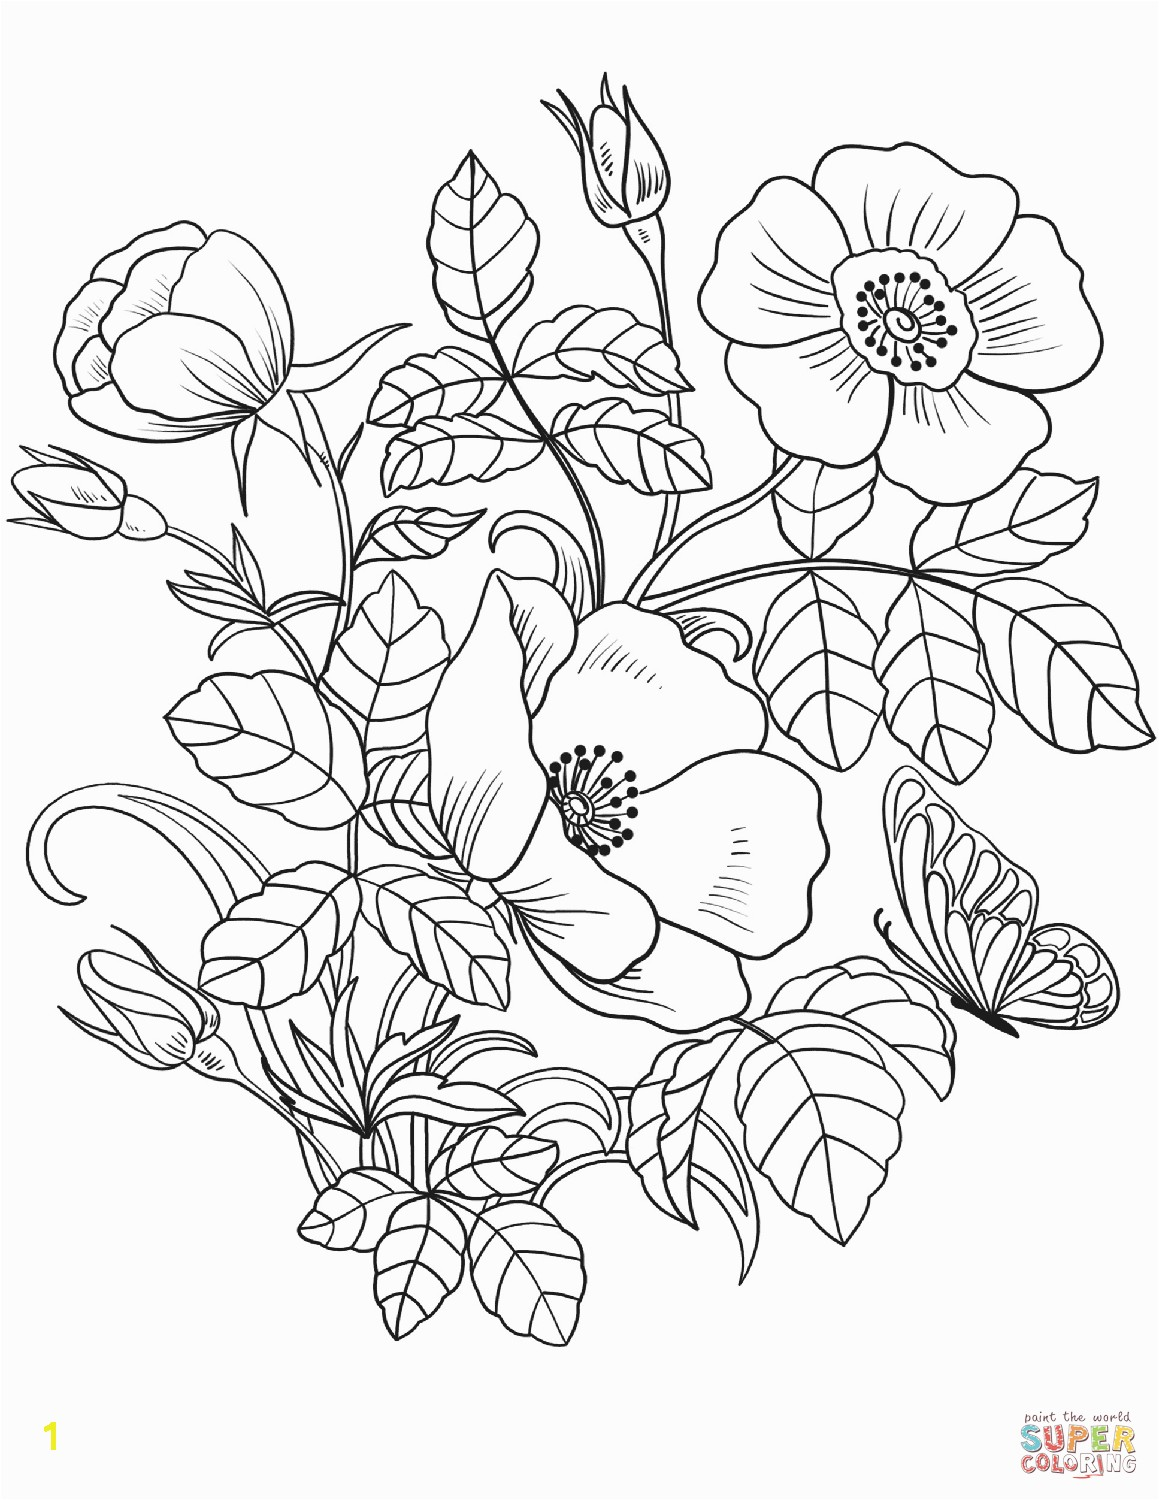 the Spring Flowers coloring pages to view printable version or color it online patible with iPad and Android tablets